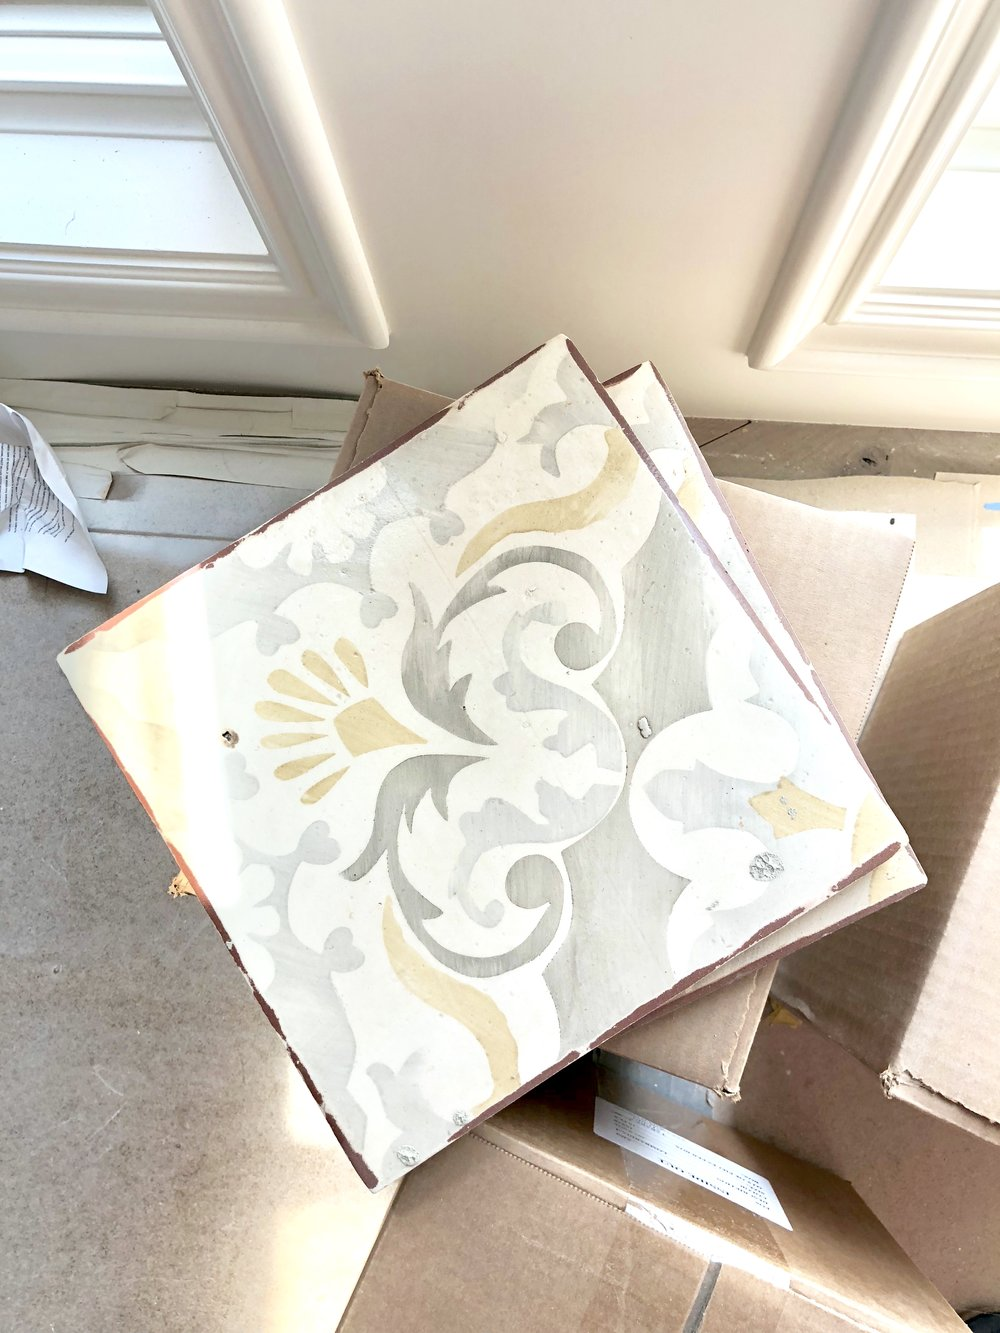 Isn't this custom tile amazing? Each piece is hand painted and just gorgeous. We looked at a lot of tile for this space in a wide variety of colors, but this particular option just felt right!